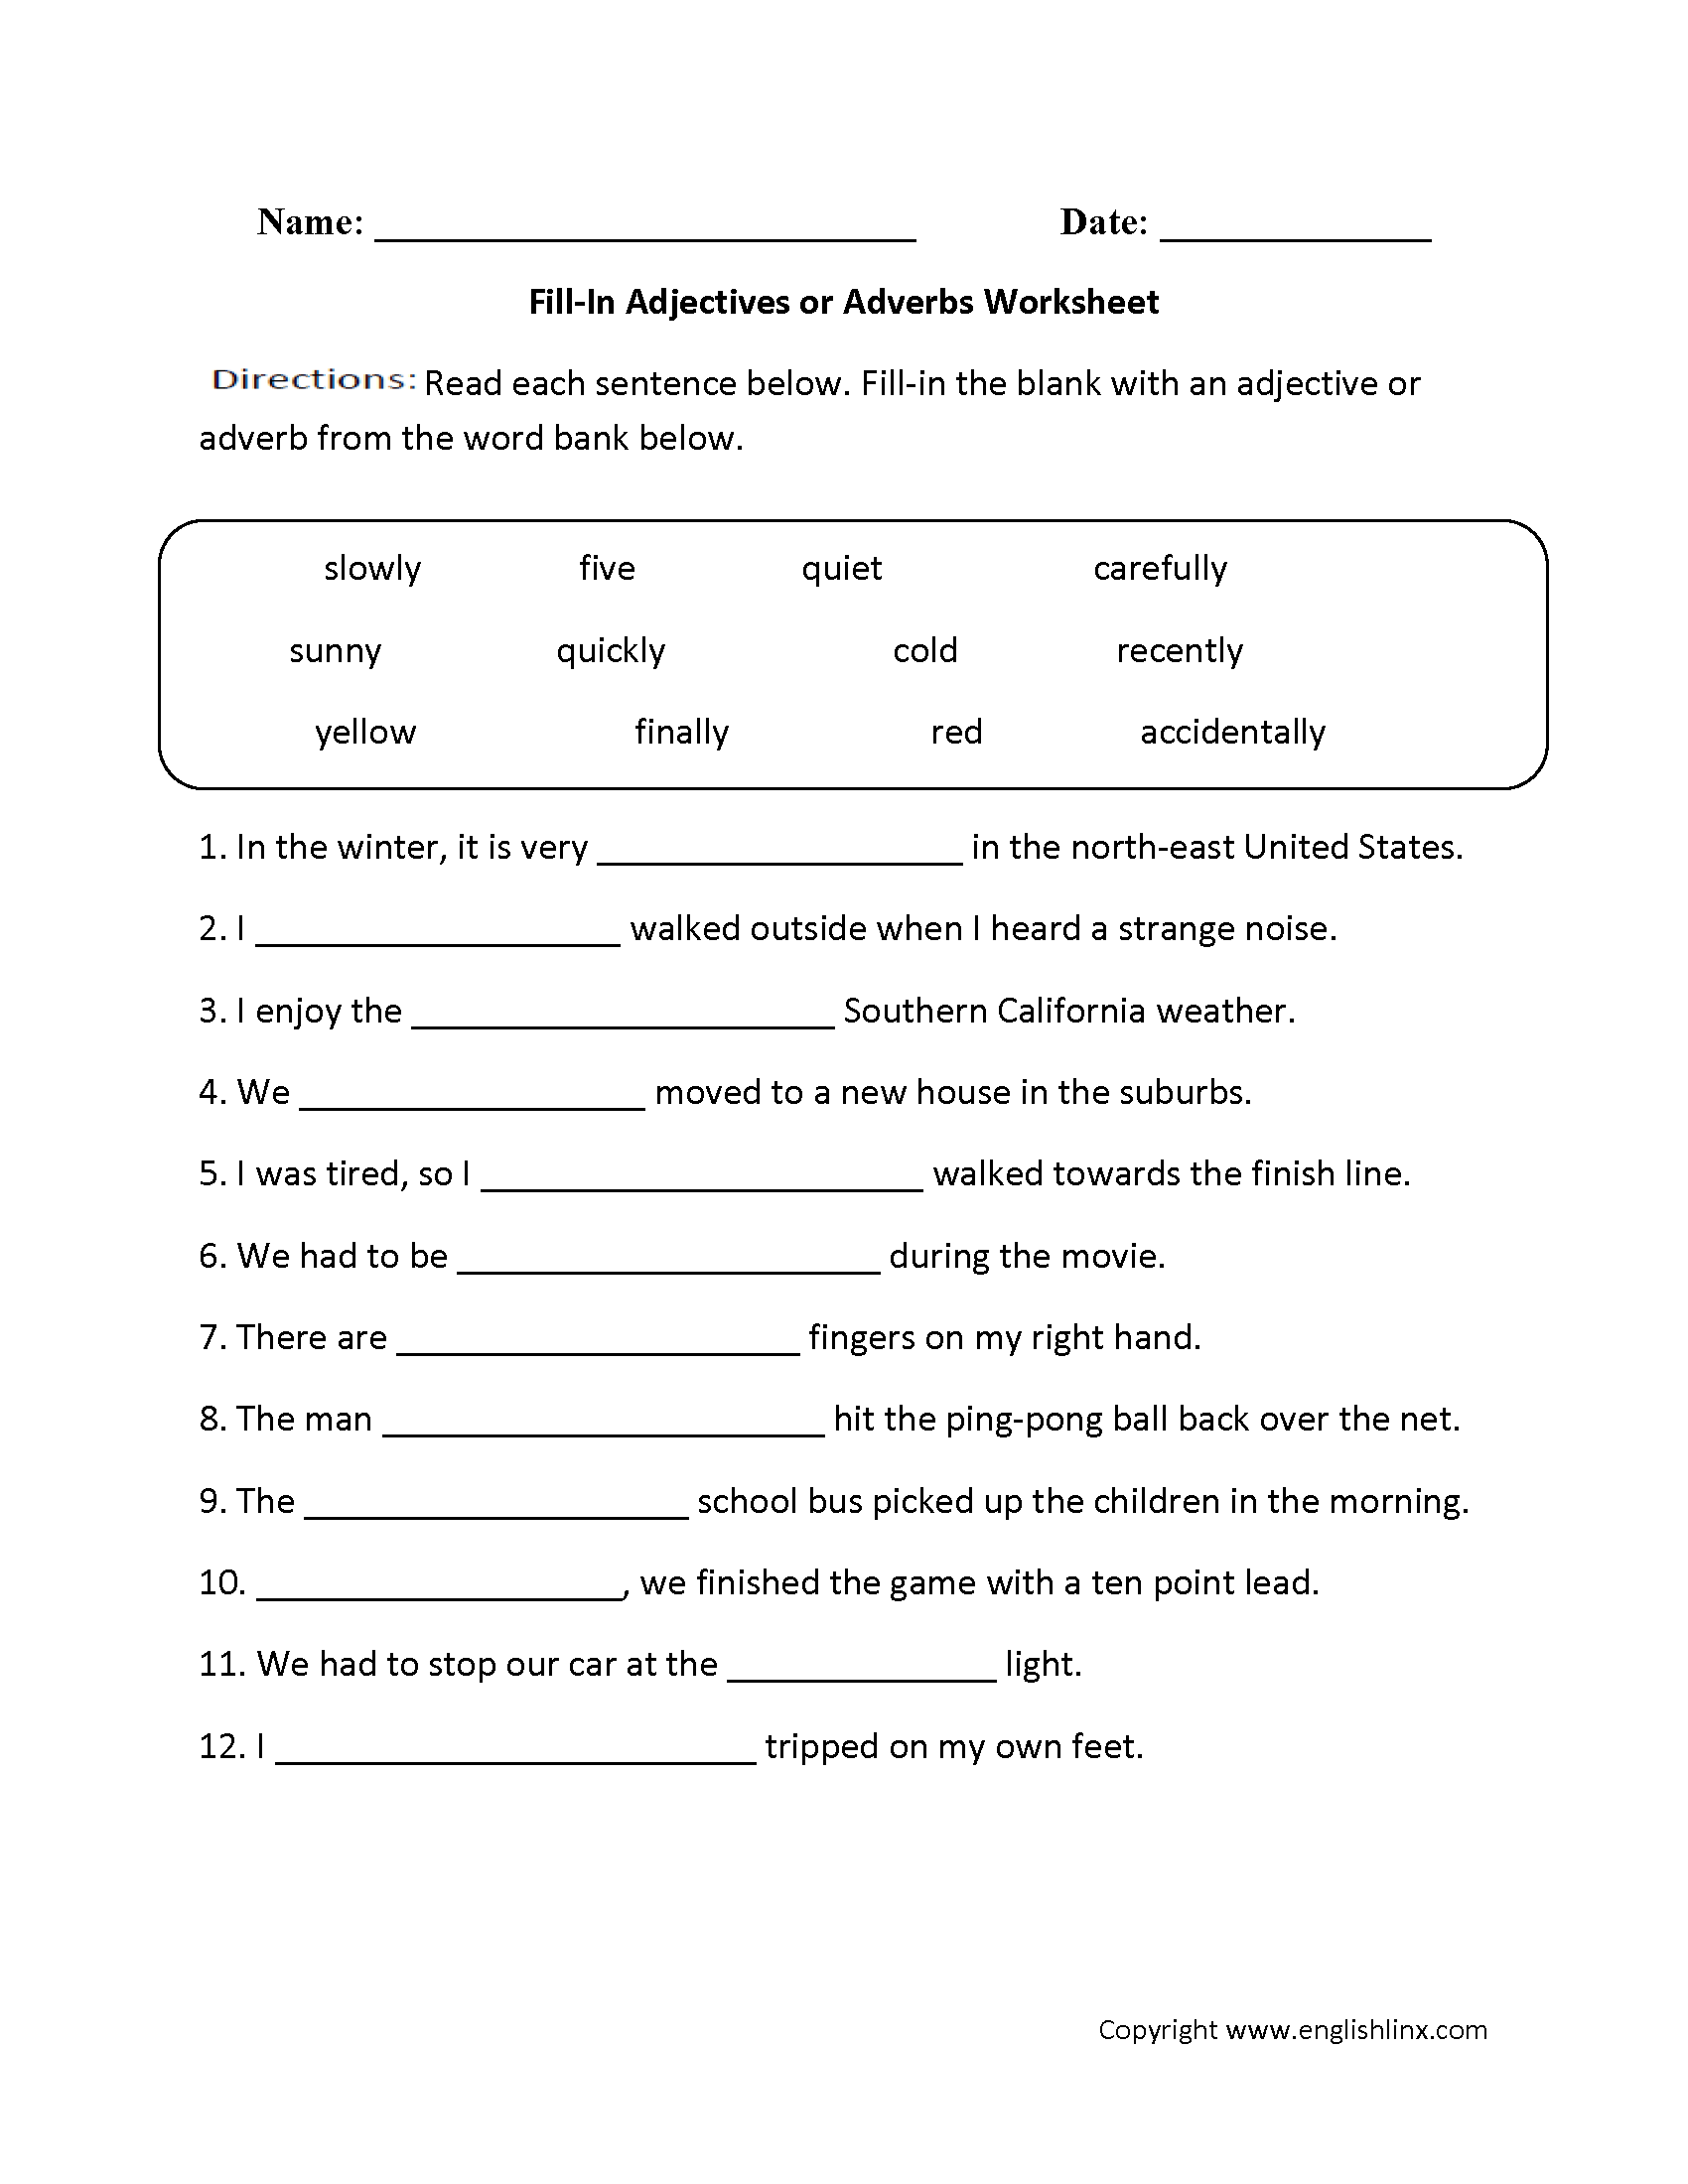 Adjectives or Adverbs Worksheet